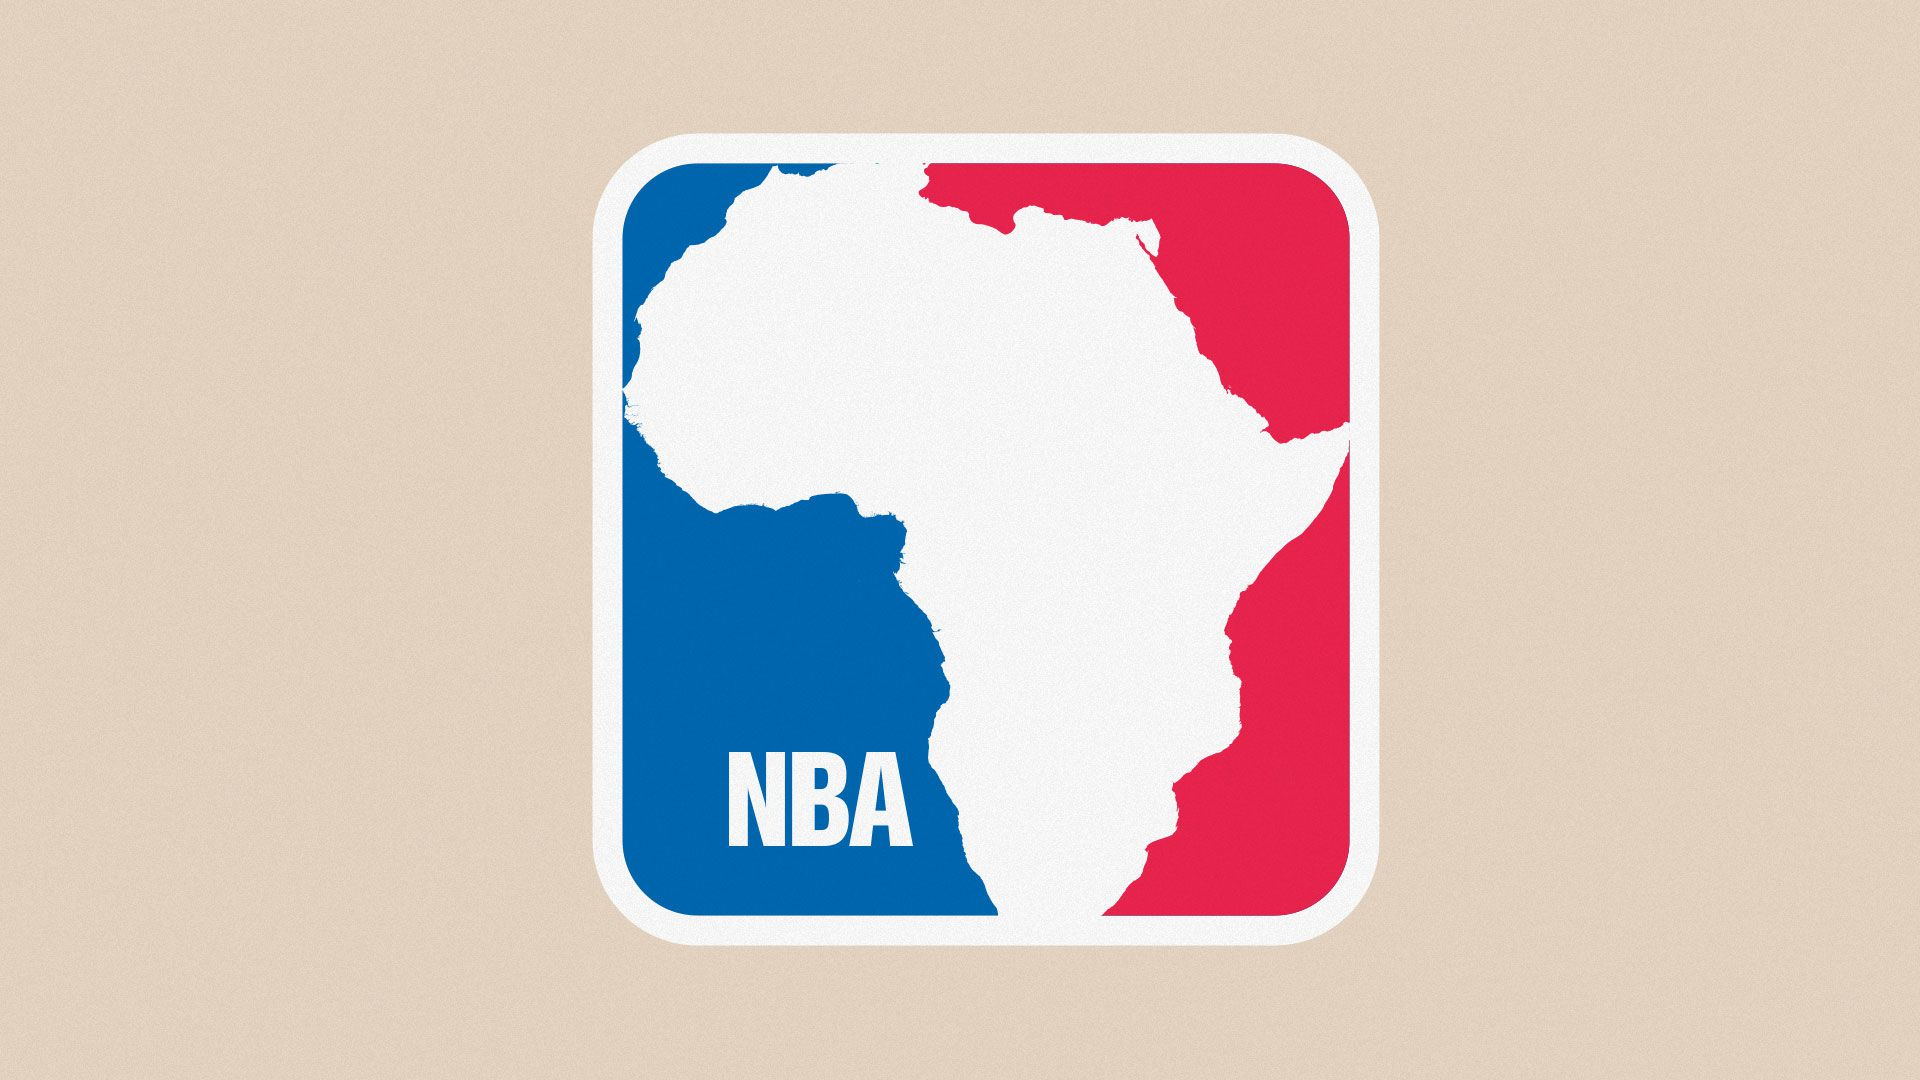 Illustration of NBA logo with person replaced with outline of Africa.